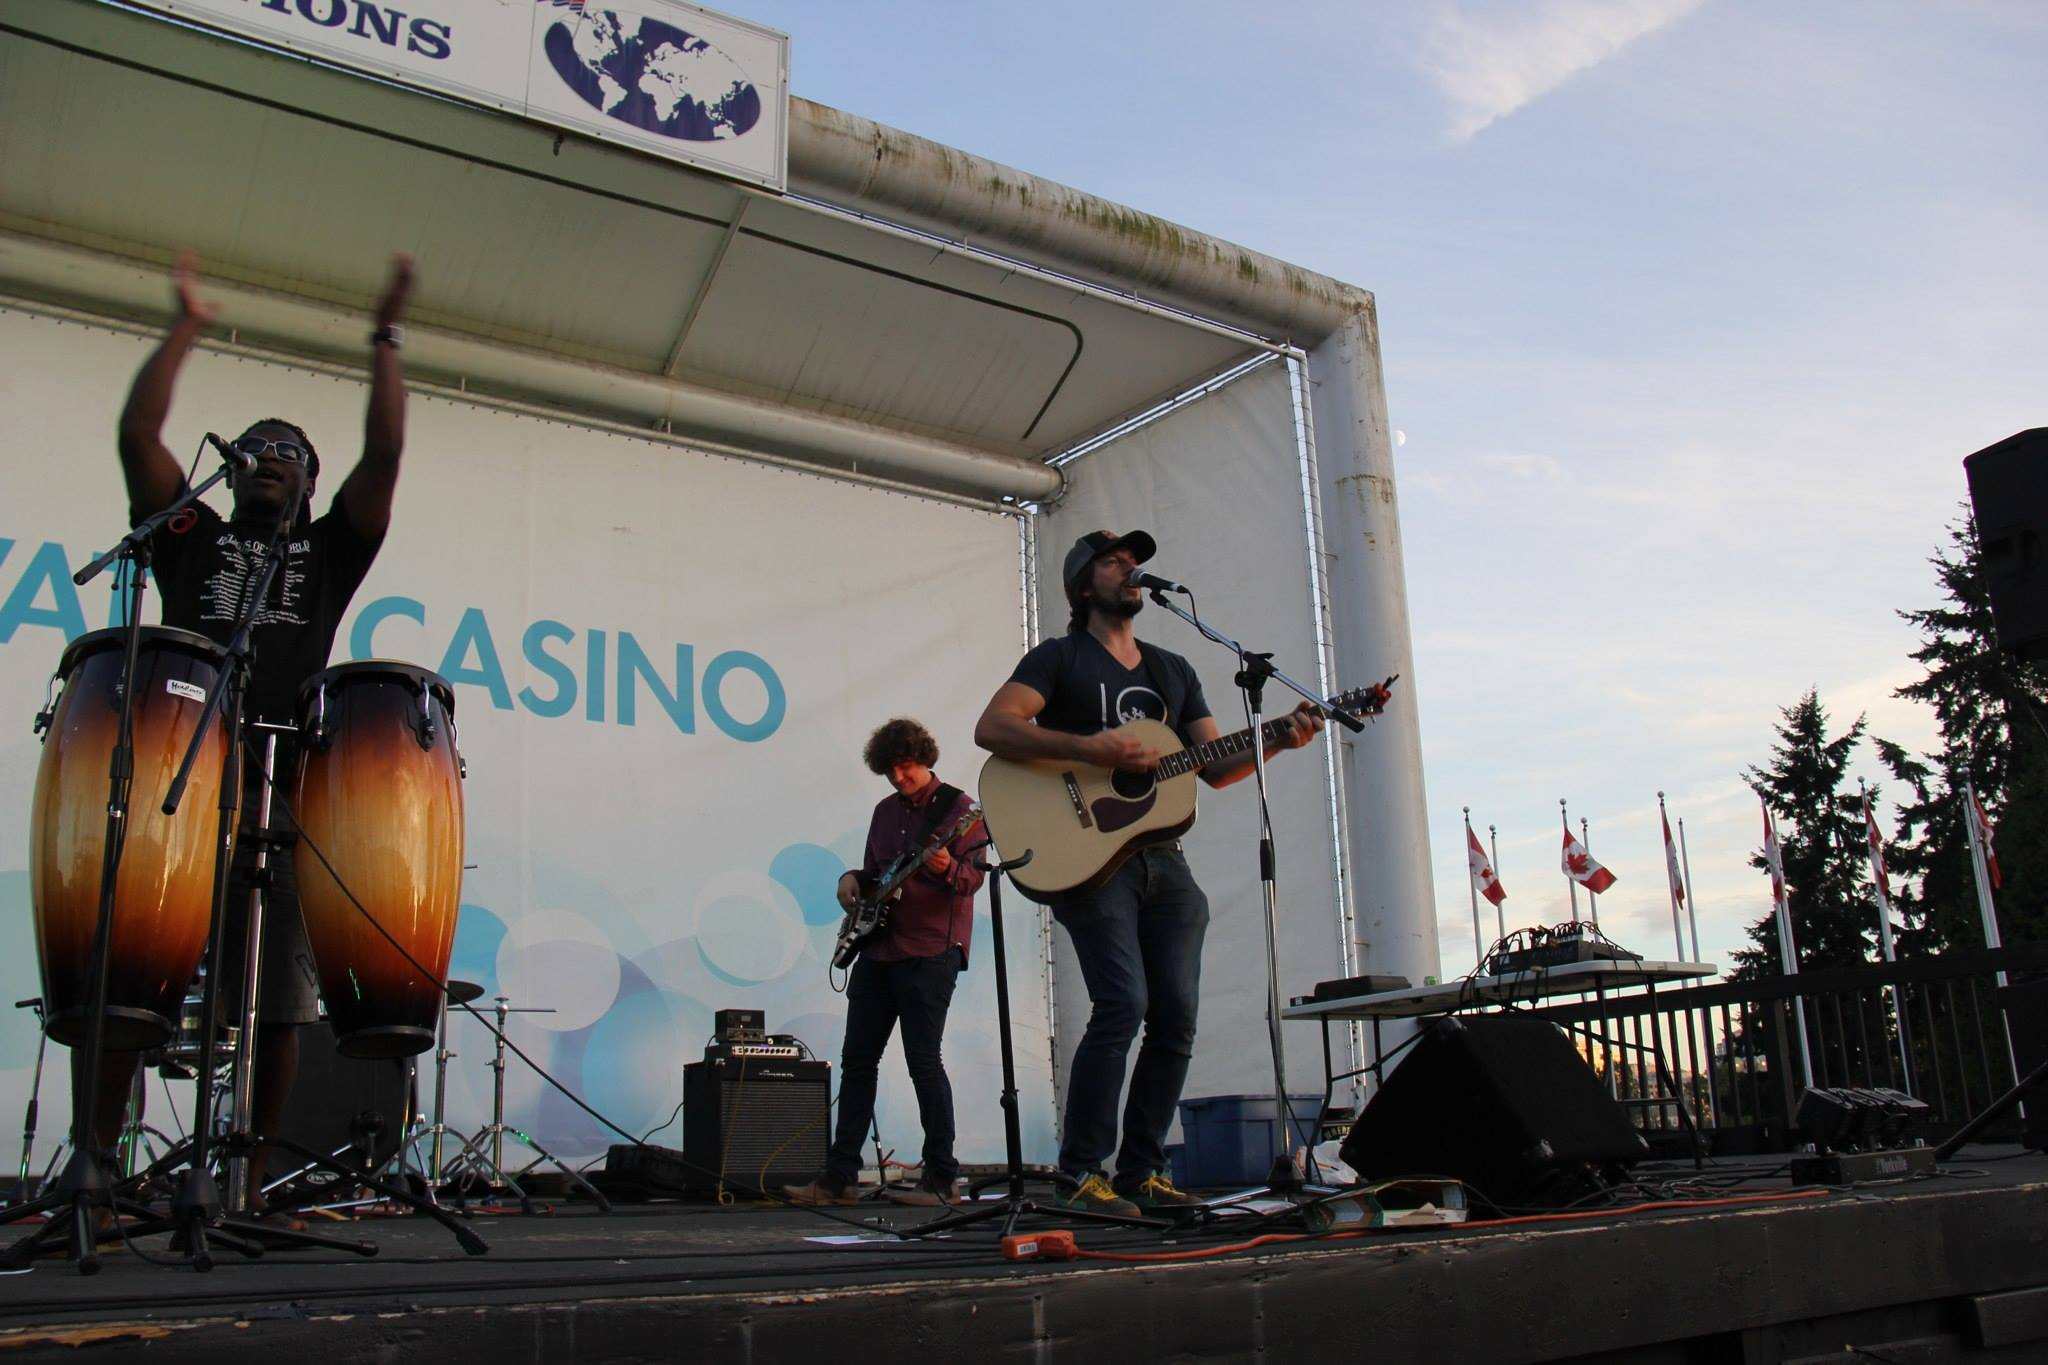 The John Welsh Band performing live at Edgewater Casino by False Creek in Vancouver, British Columbia